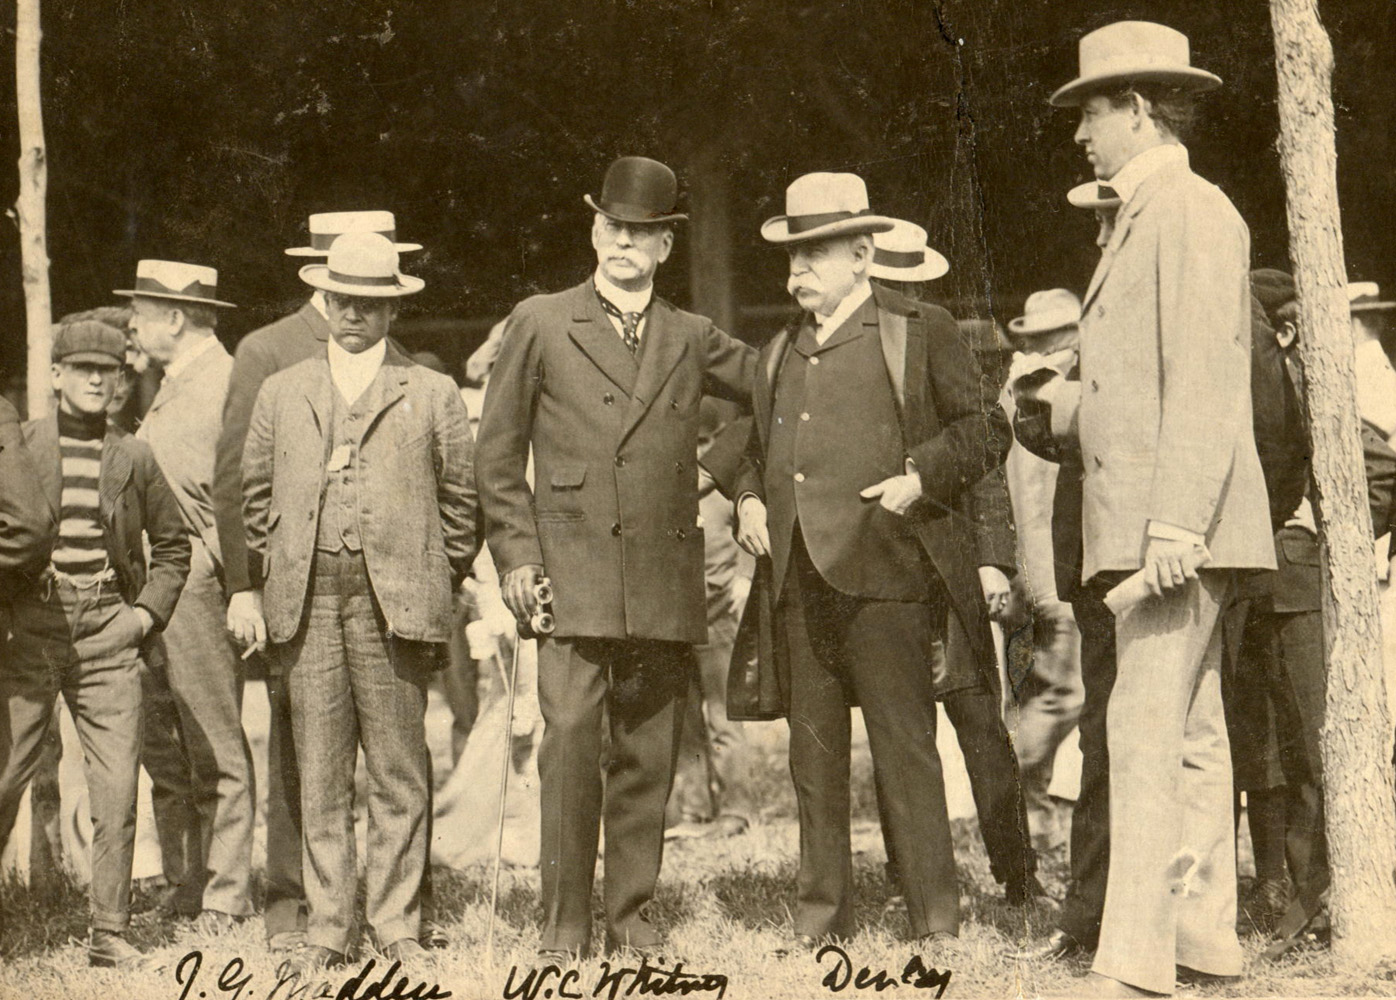 John Madden, W. C. Whitney, and Lord Derby at the Saratoga races in 1904 (Museum Collection)